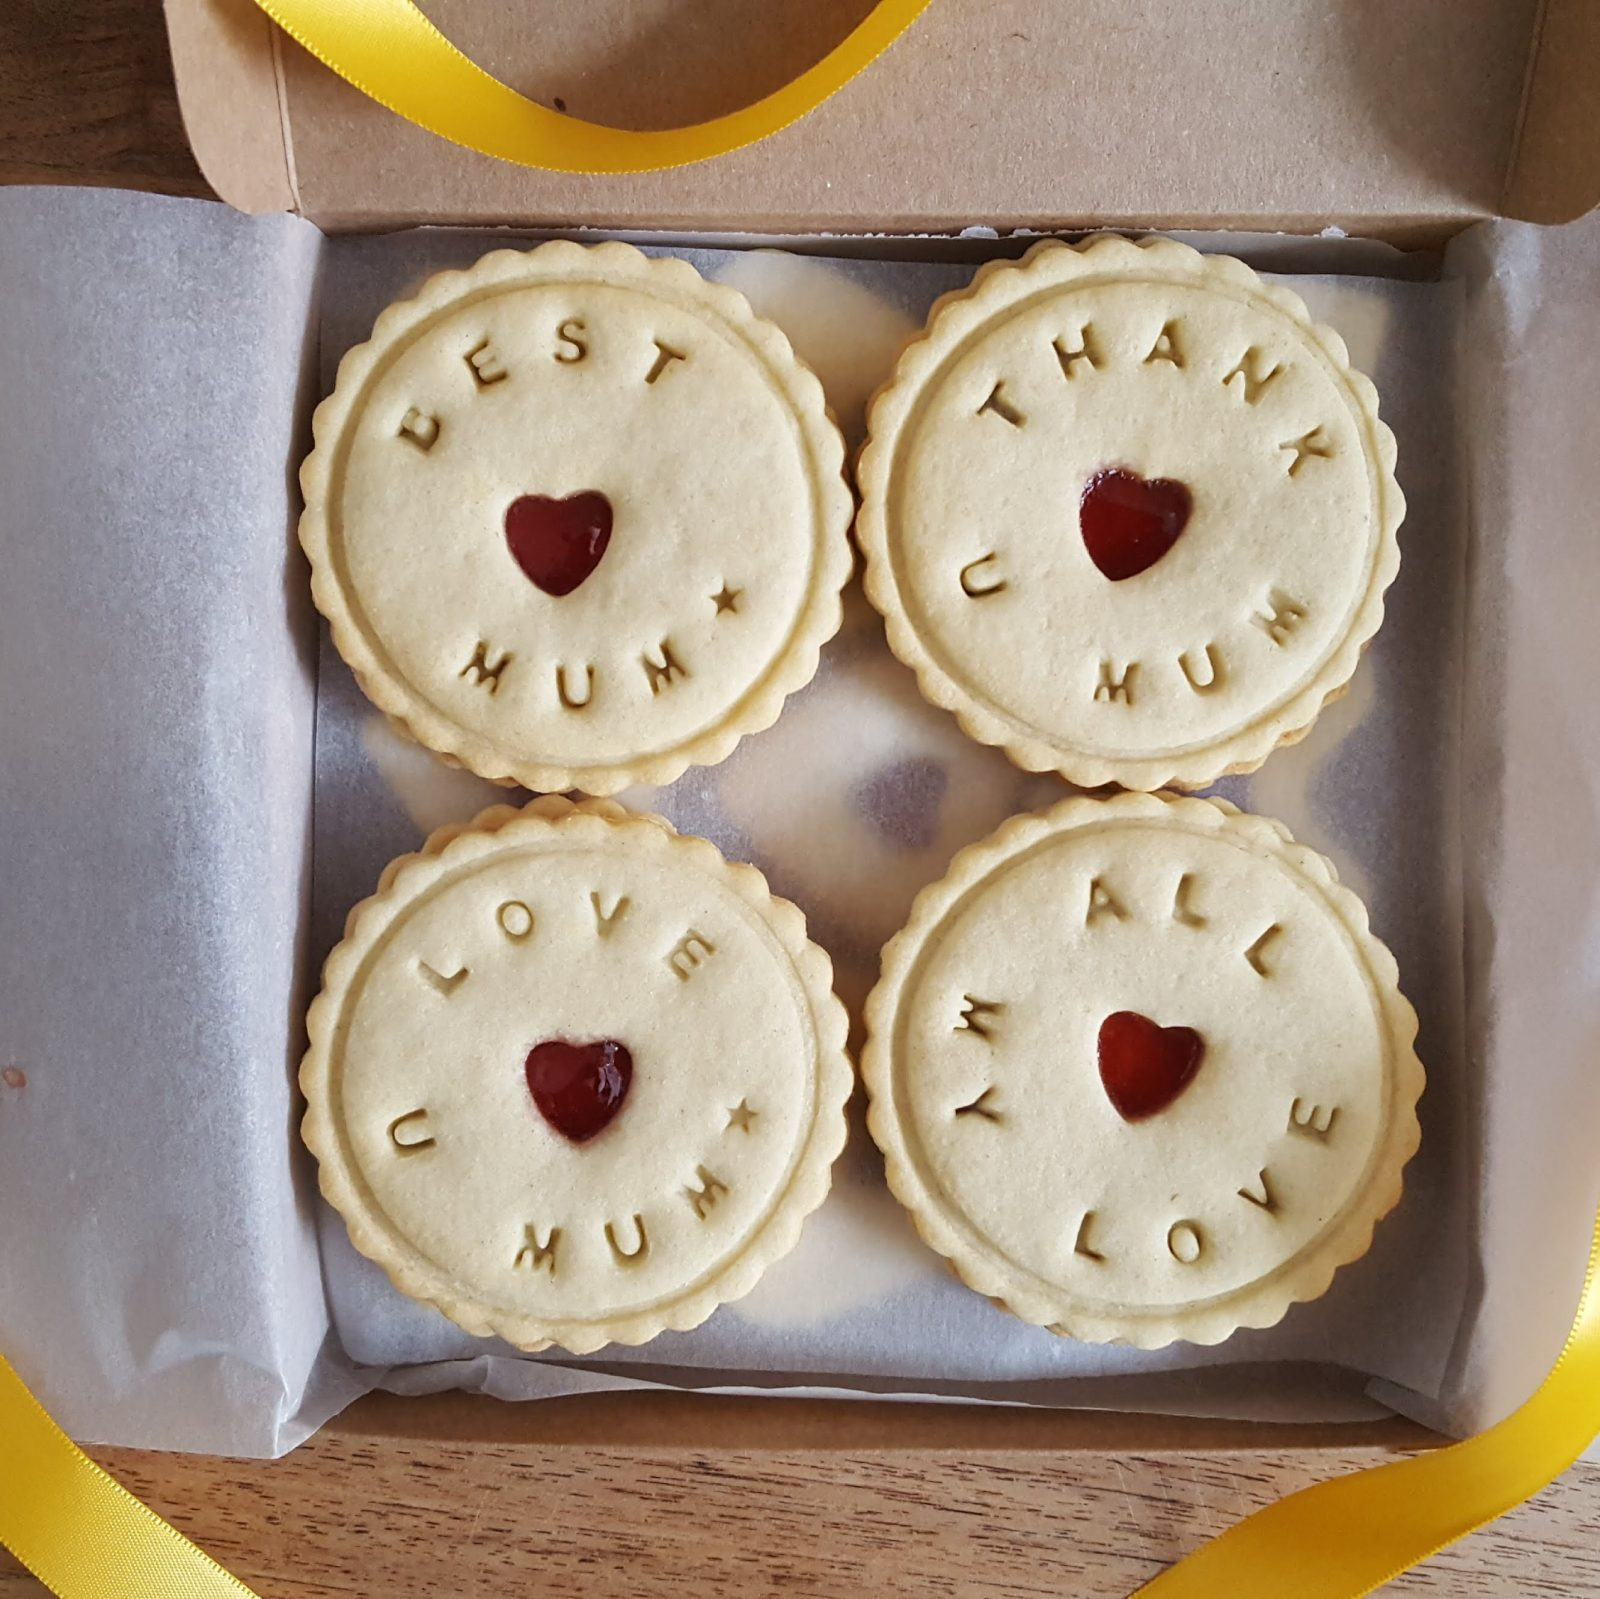 Best mum mothers day biscuits